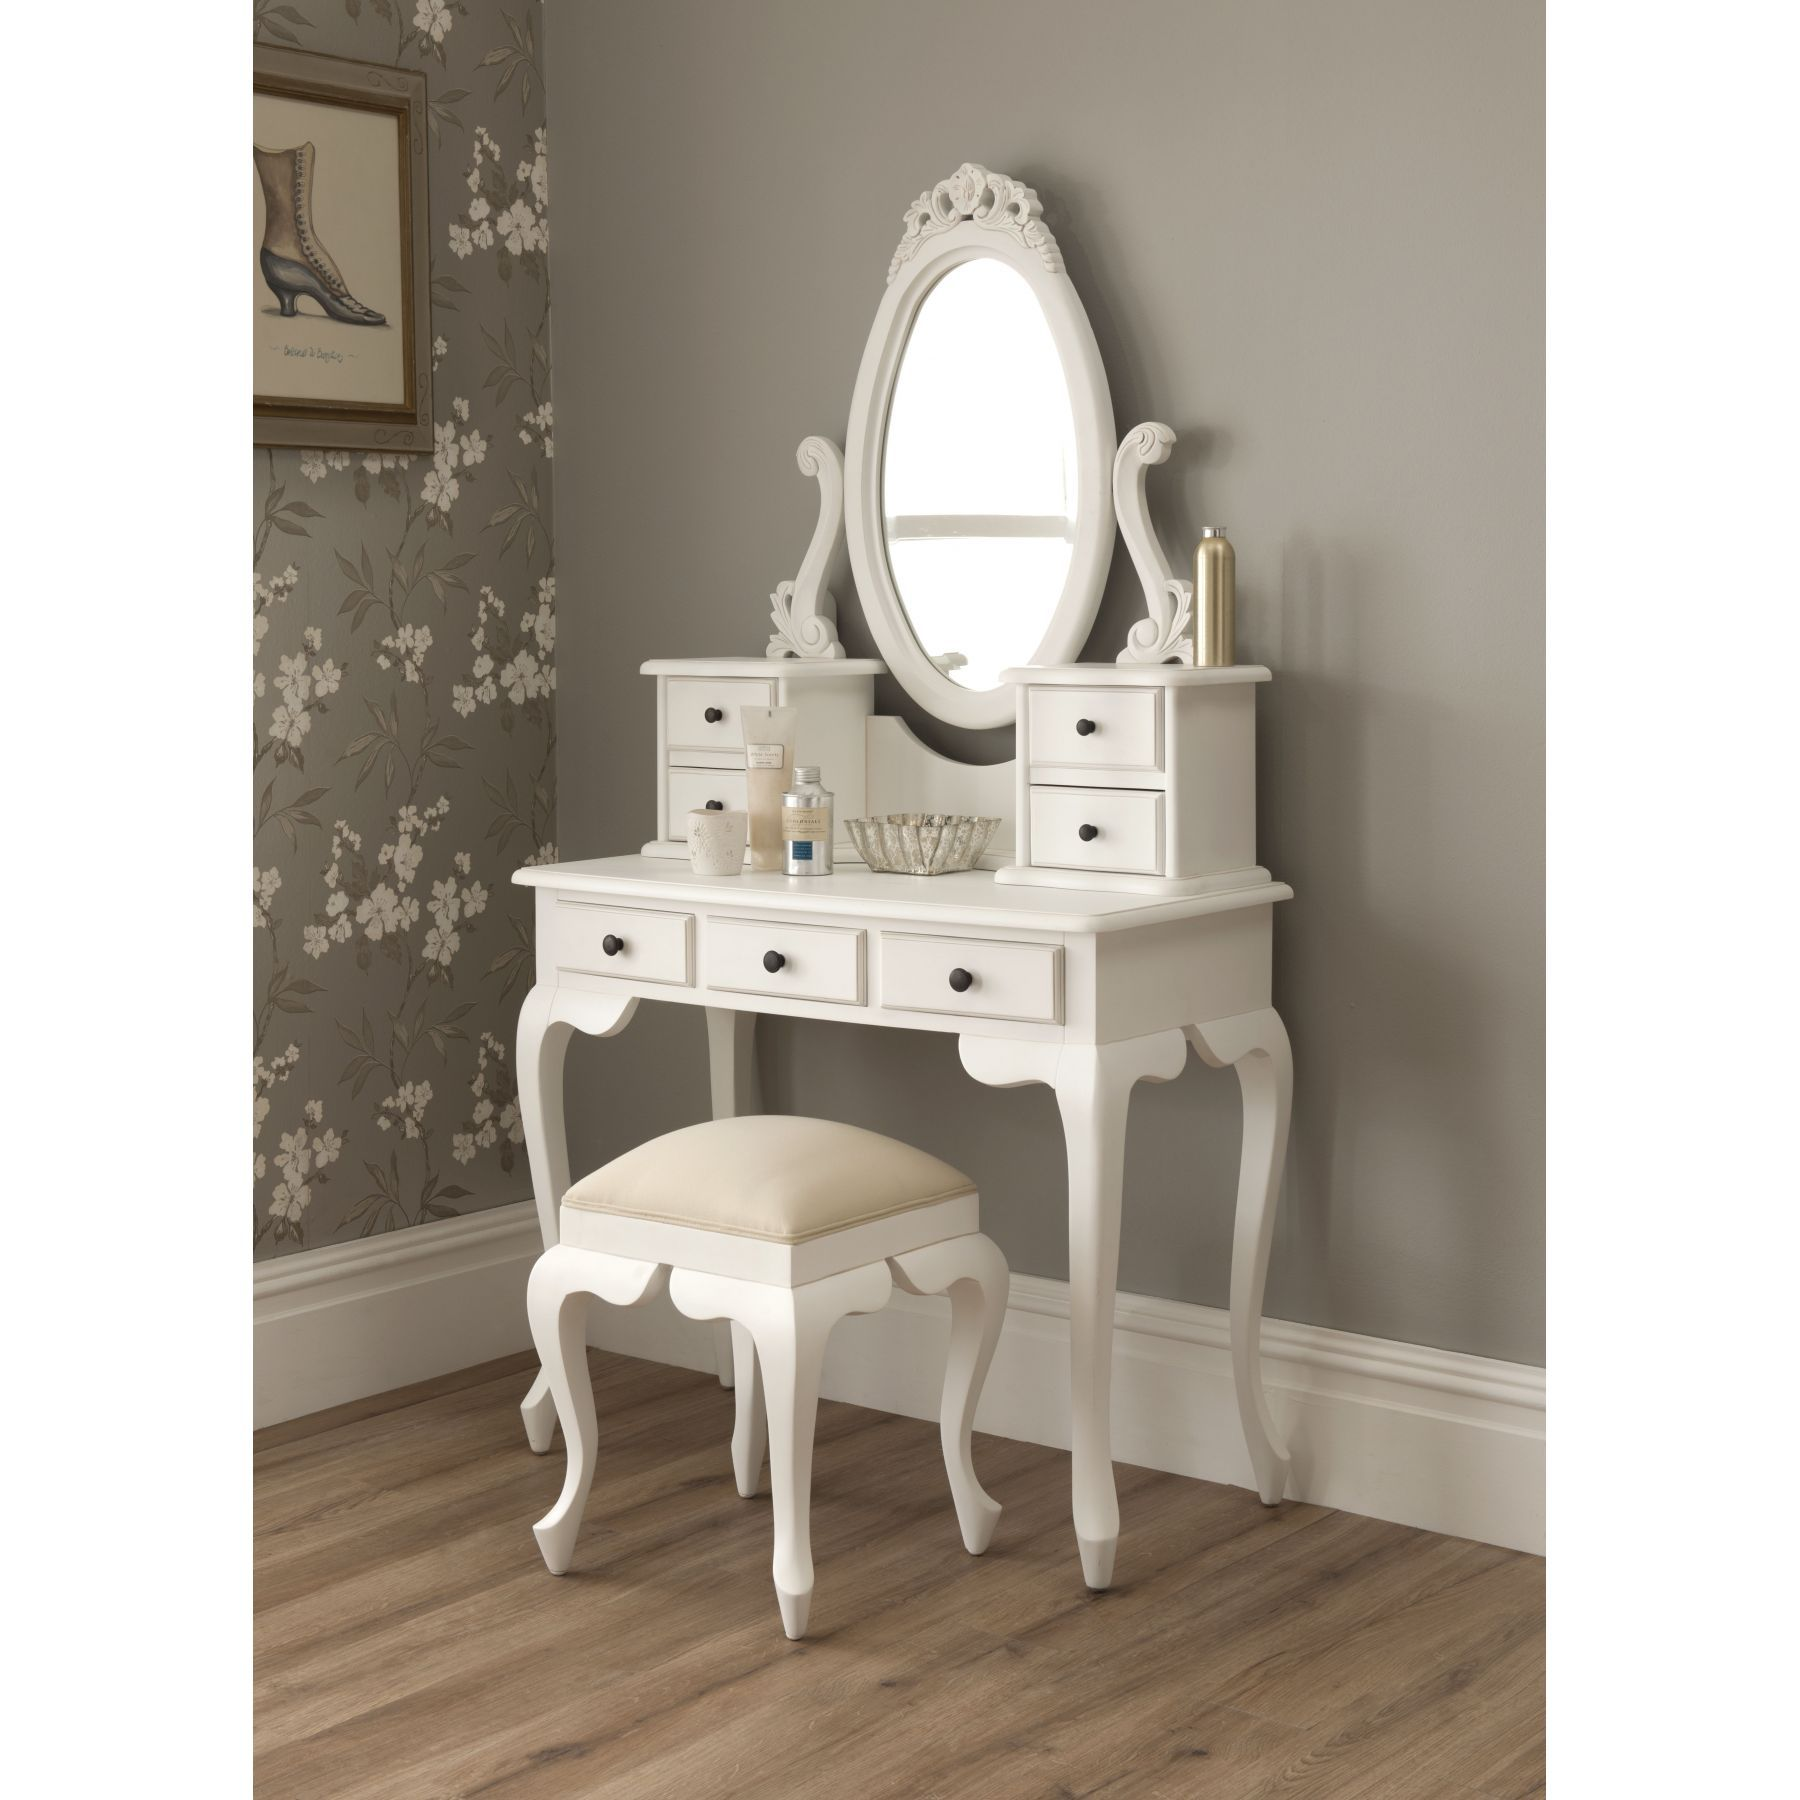 white bedroom vanity chair beach chairs for toddlers rustic wooden makeup enchanting